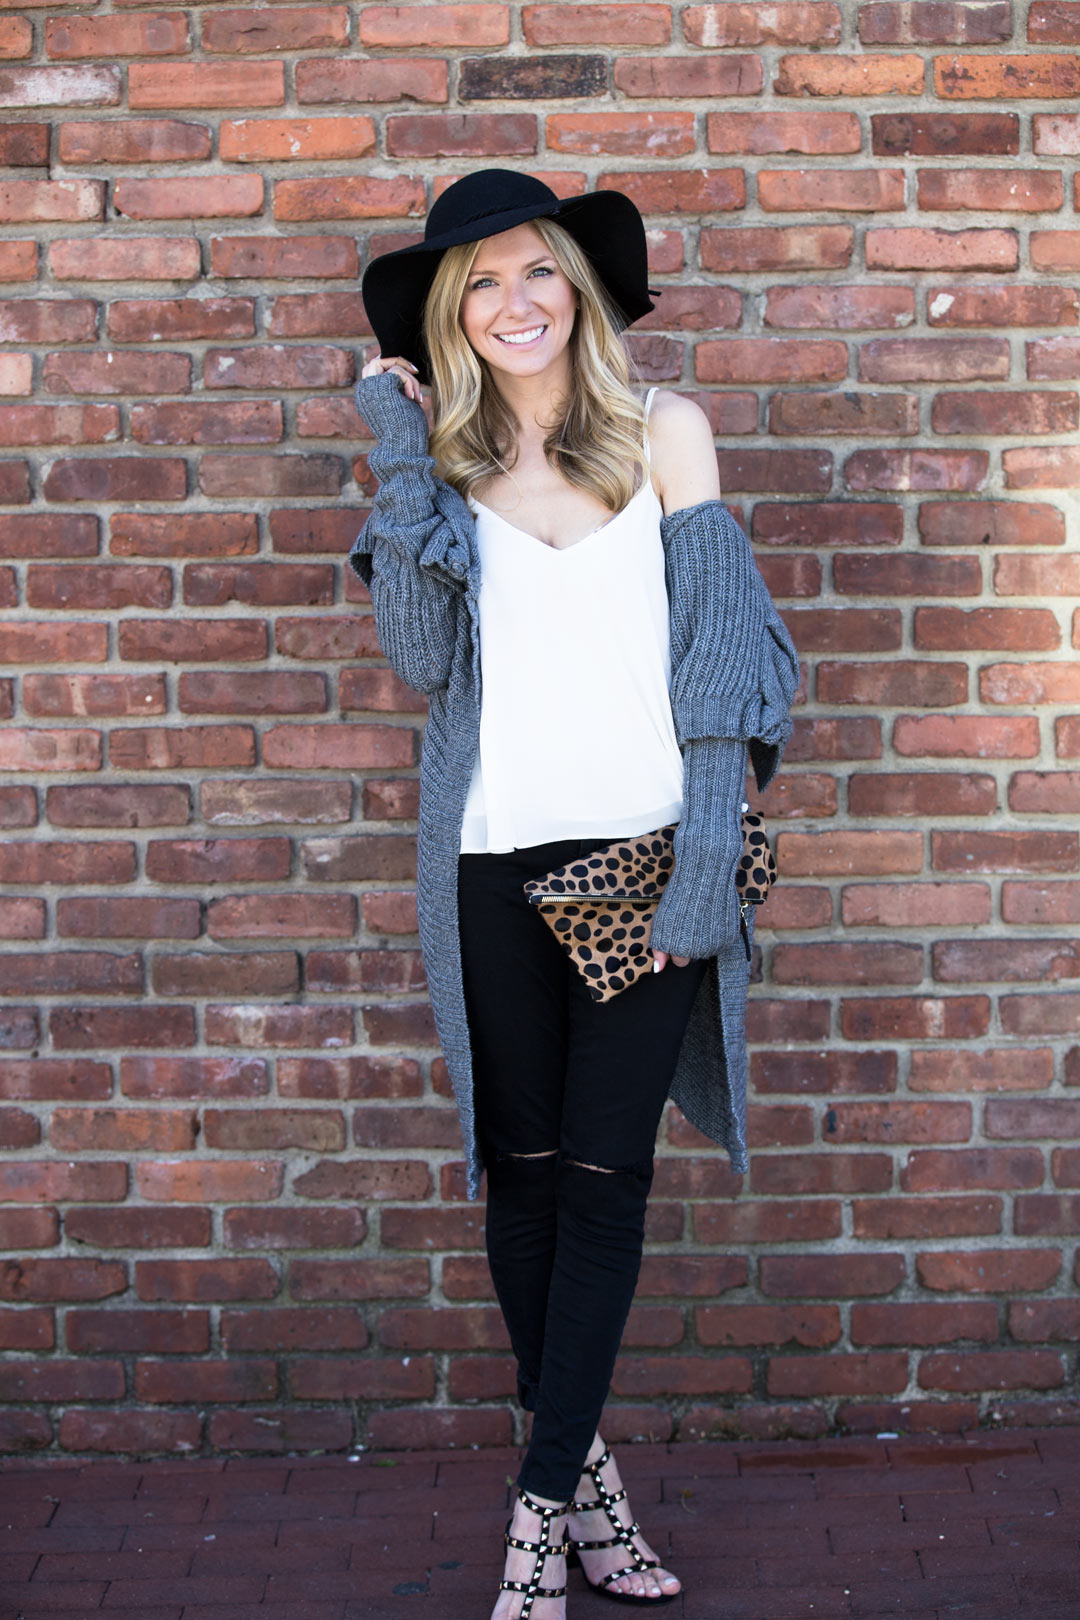 perfect saturday brunch outfit